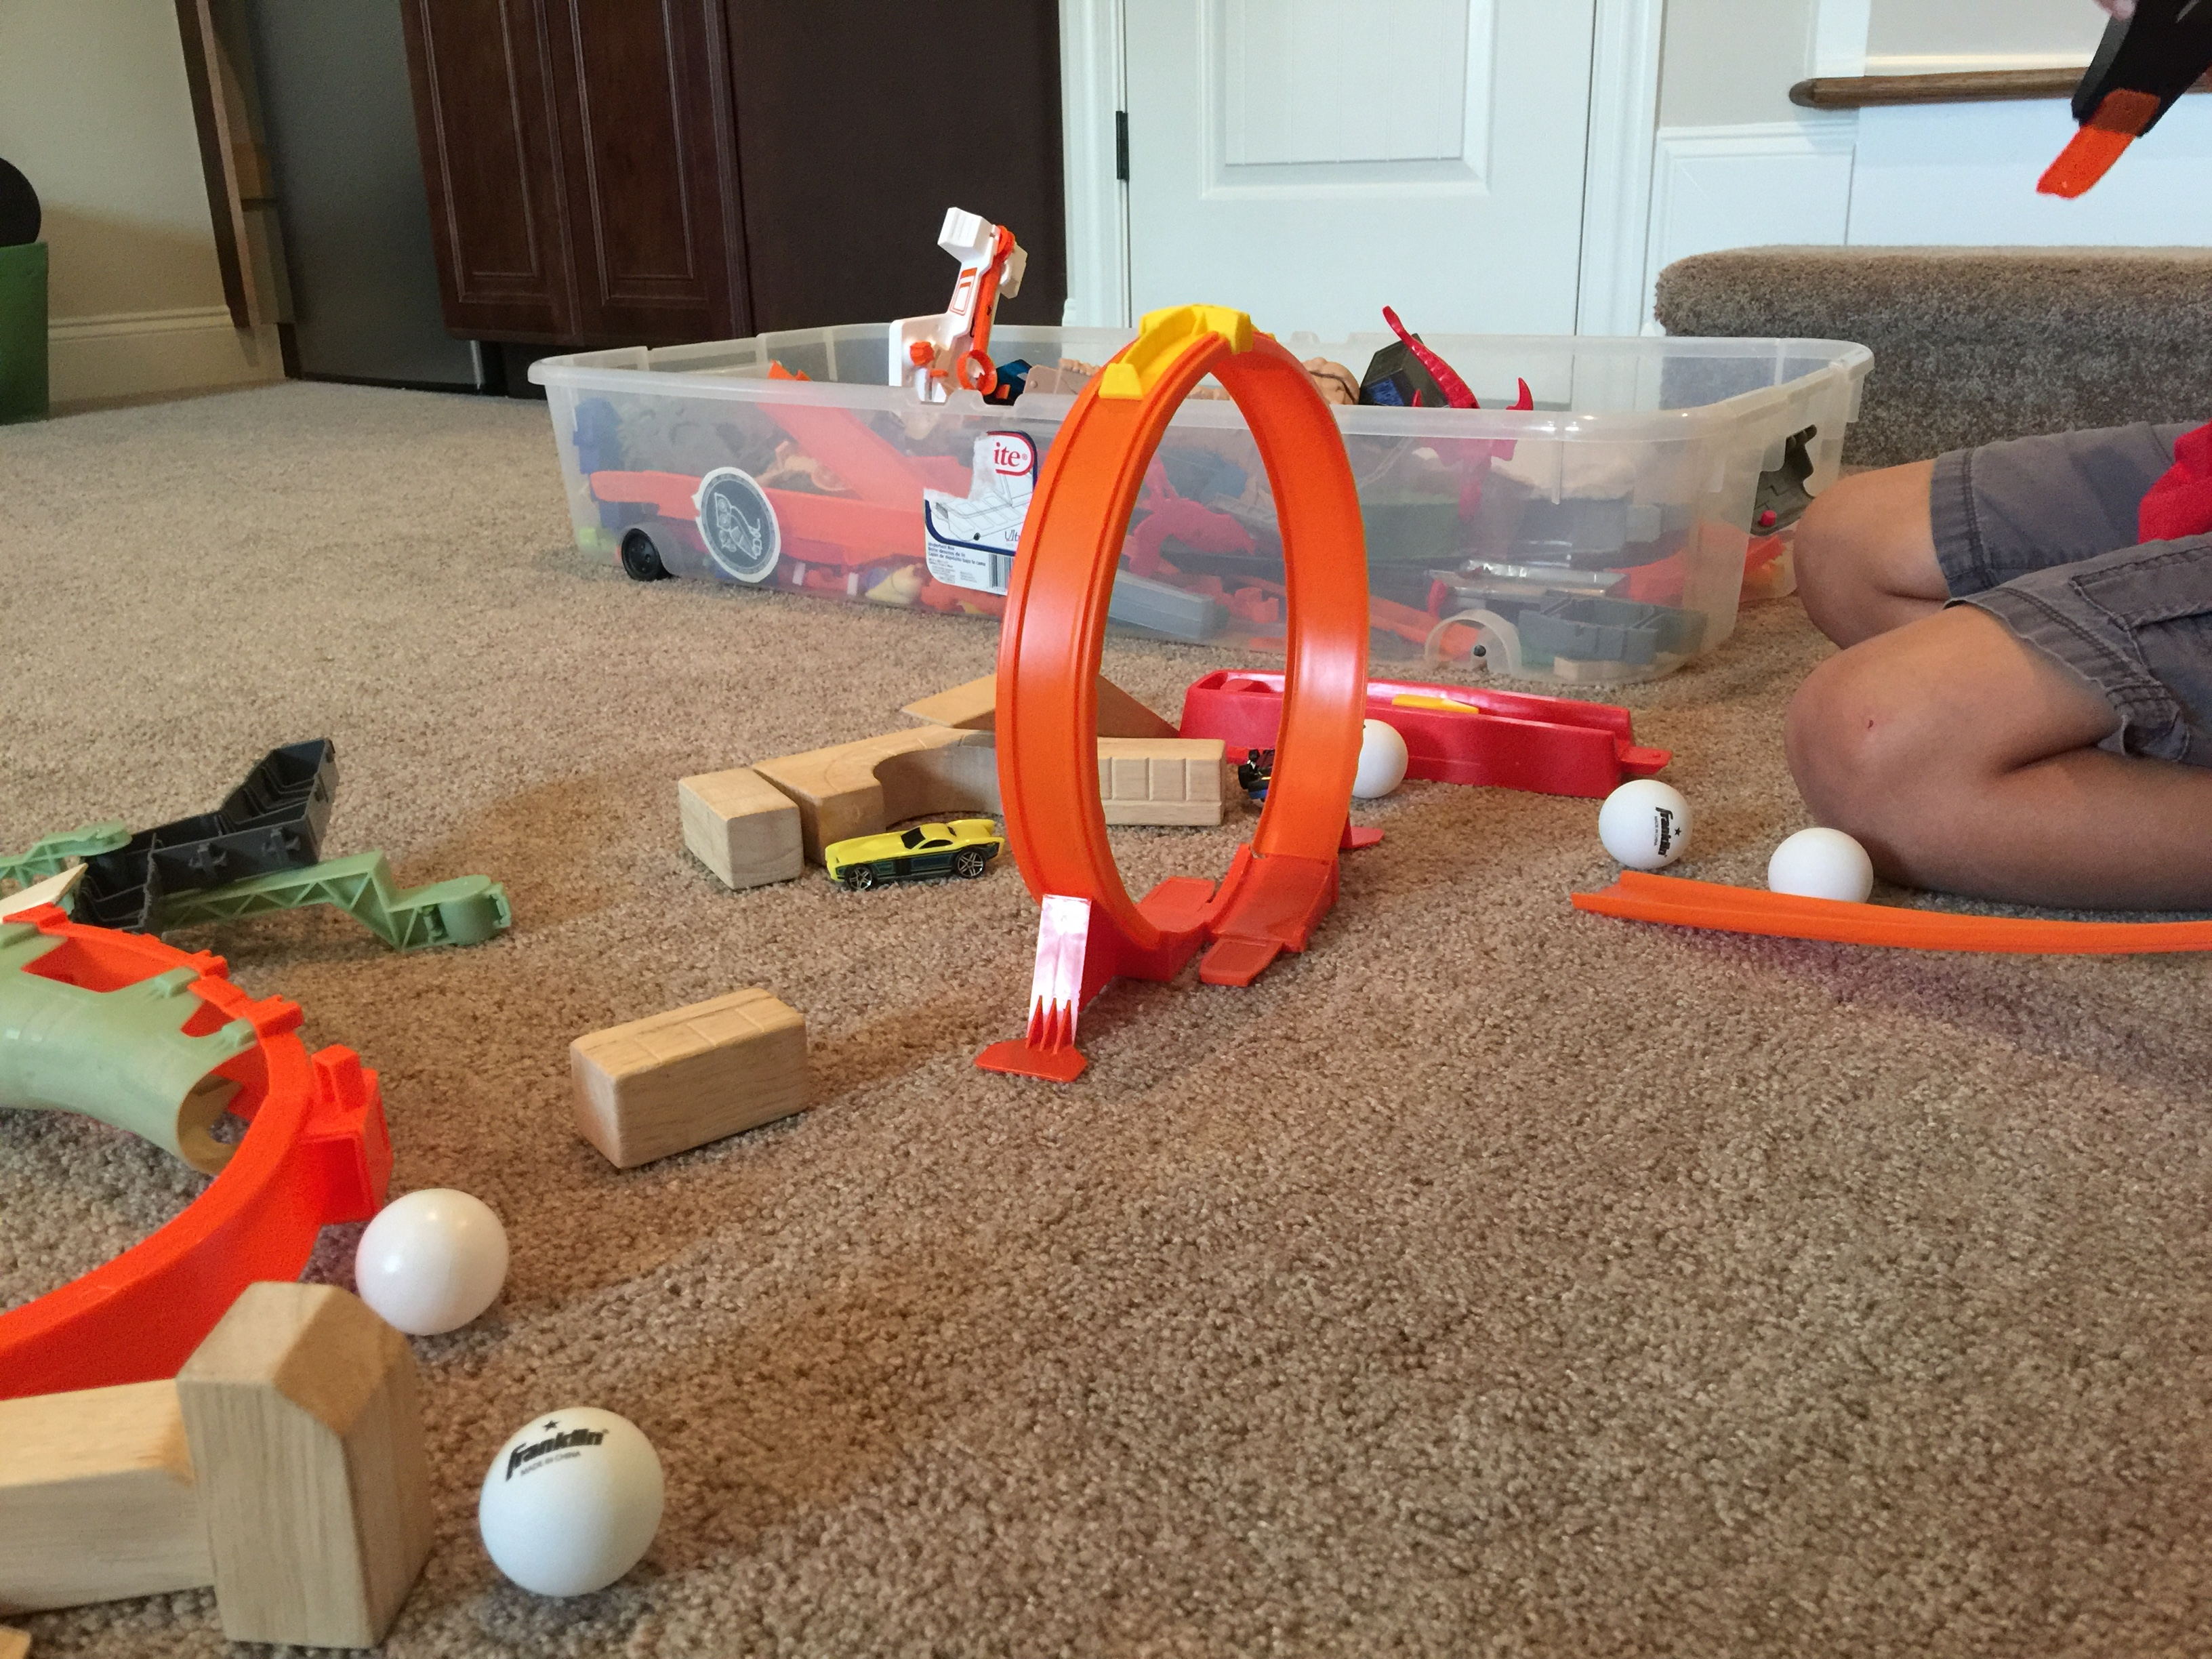 Why is that ball rolling? A Simple STEAM project